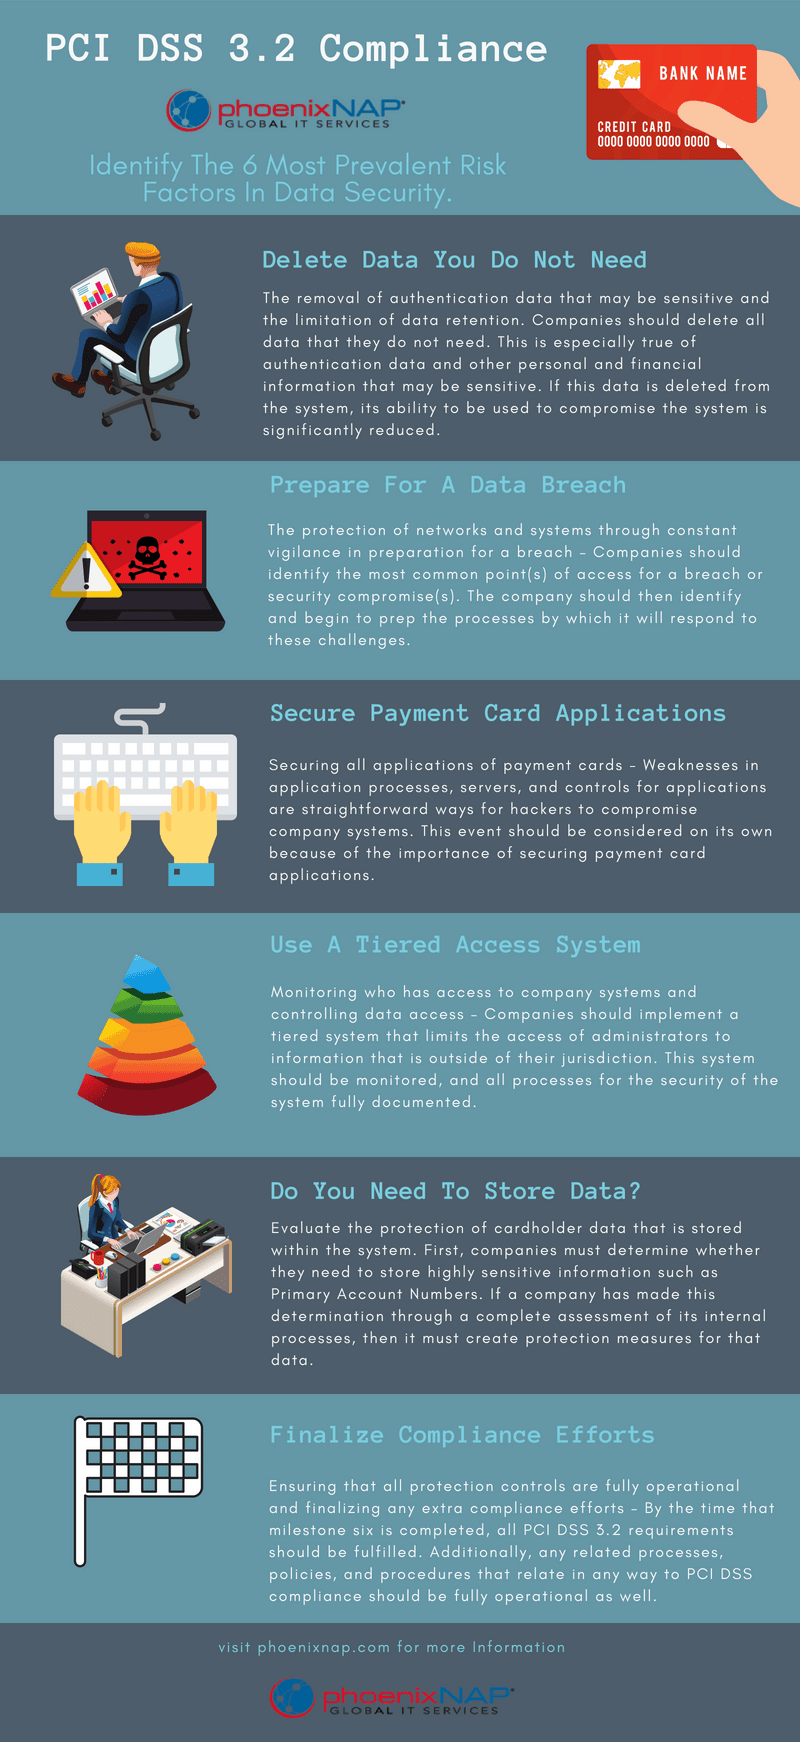 PCI DSS 3.2 infographic